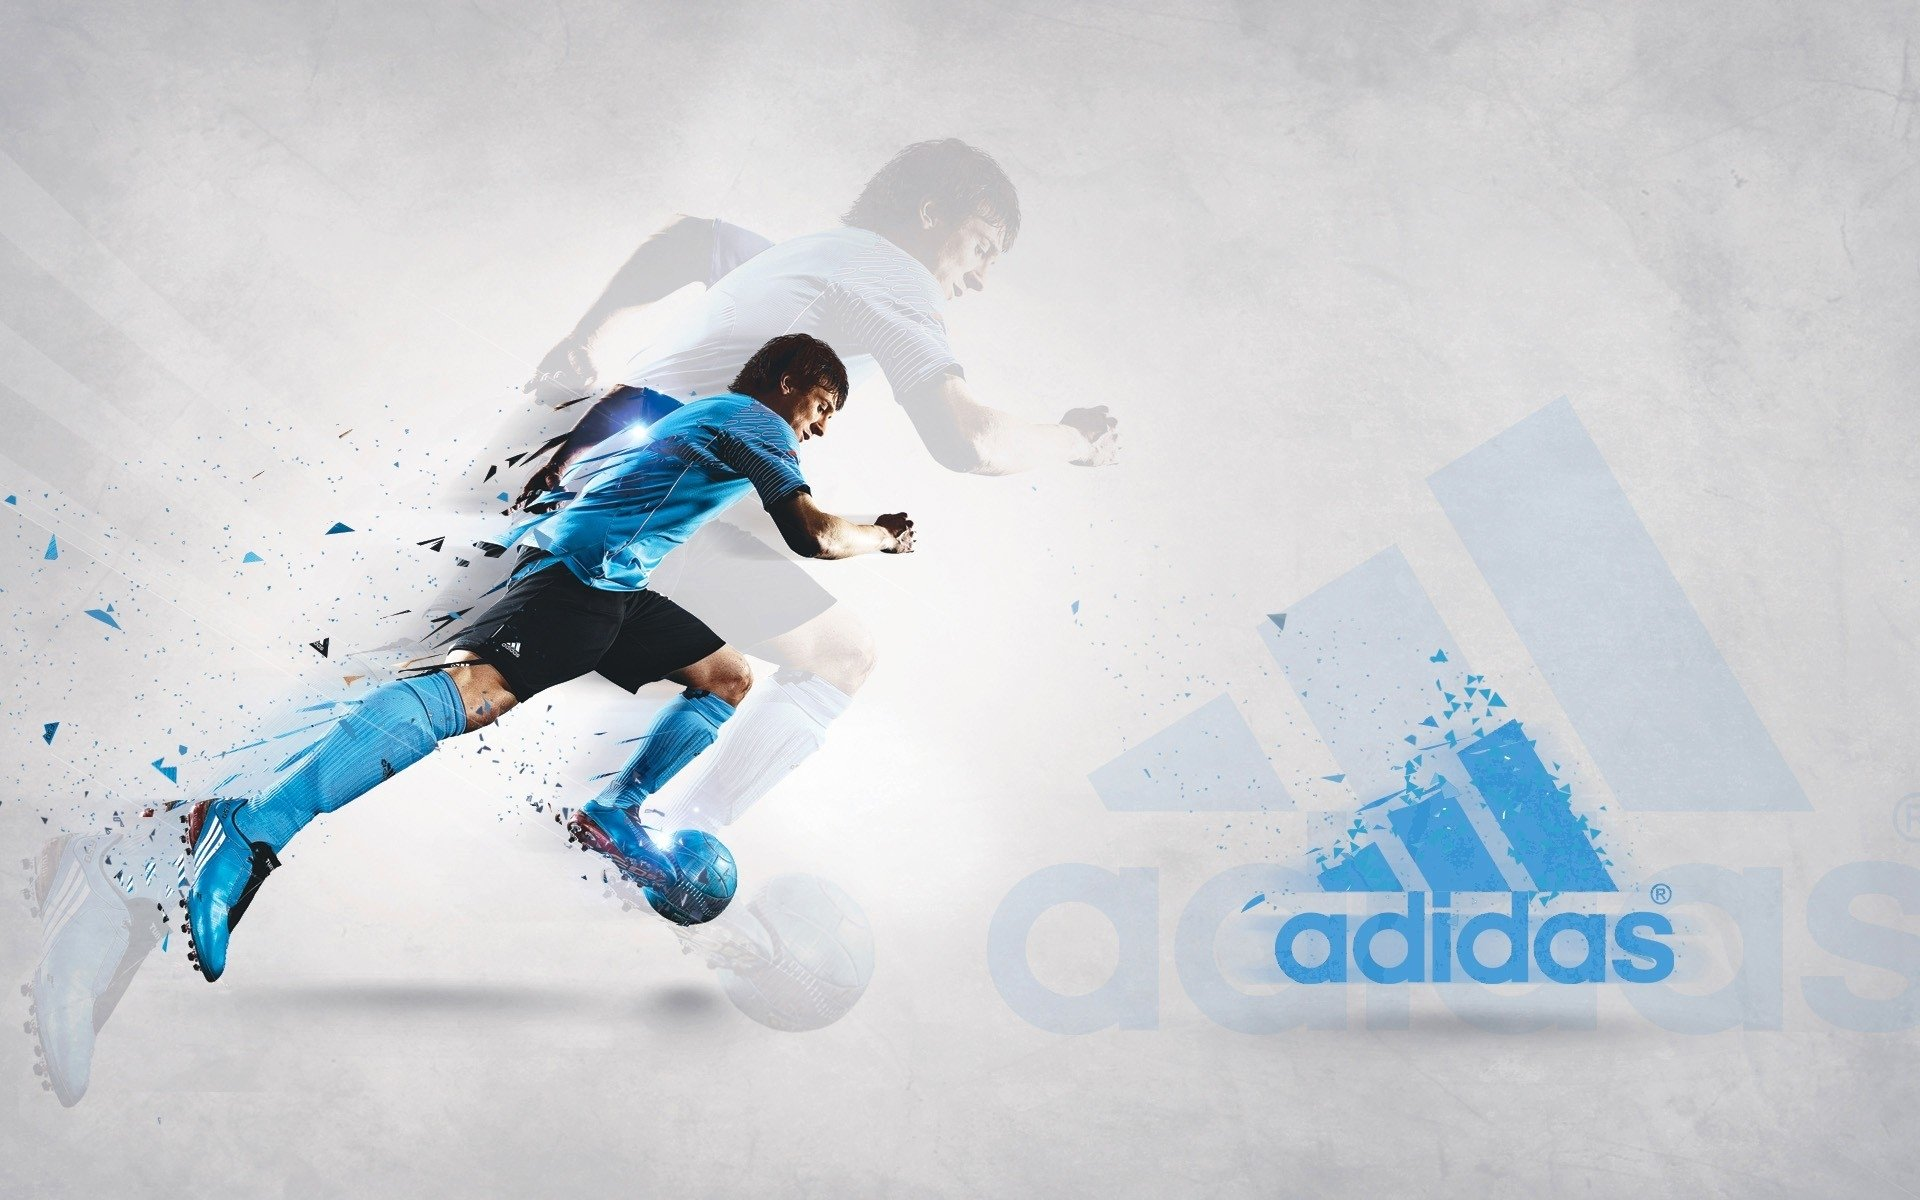 Adidas Full HD Wallpaper And Background Image